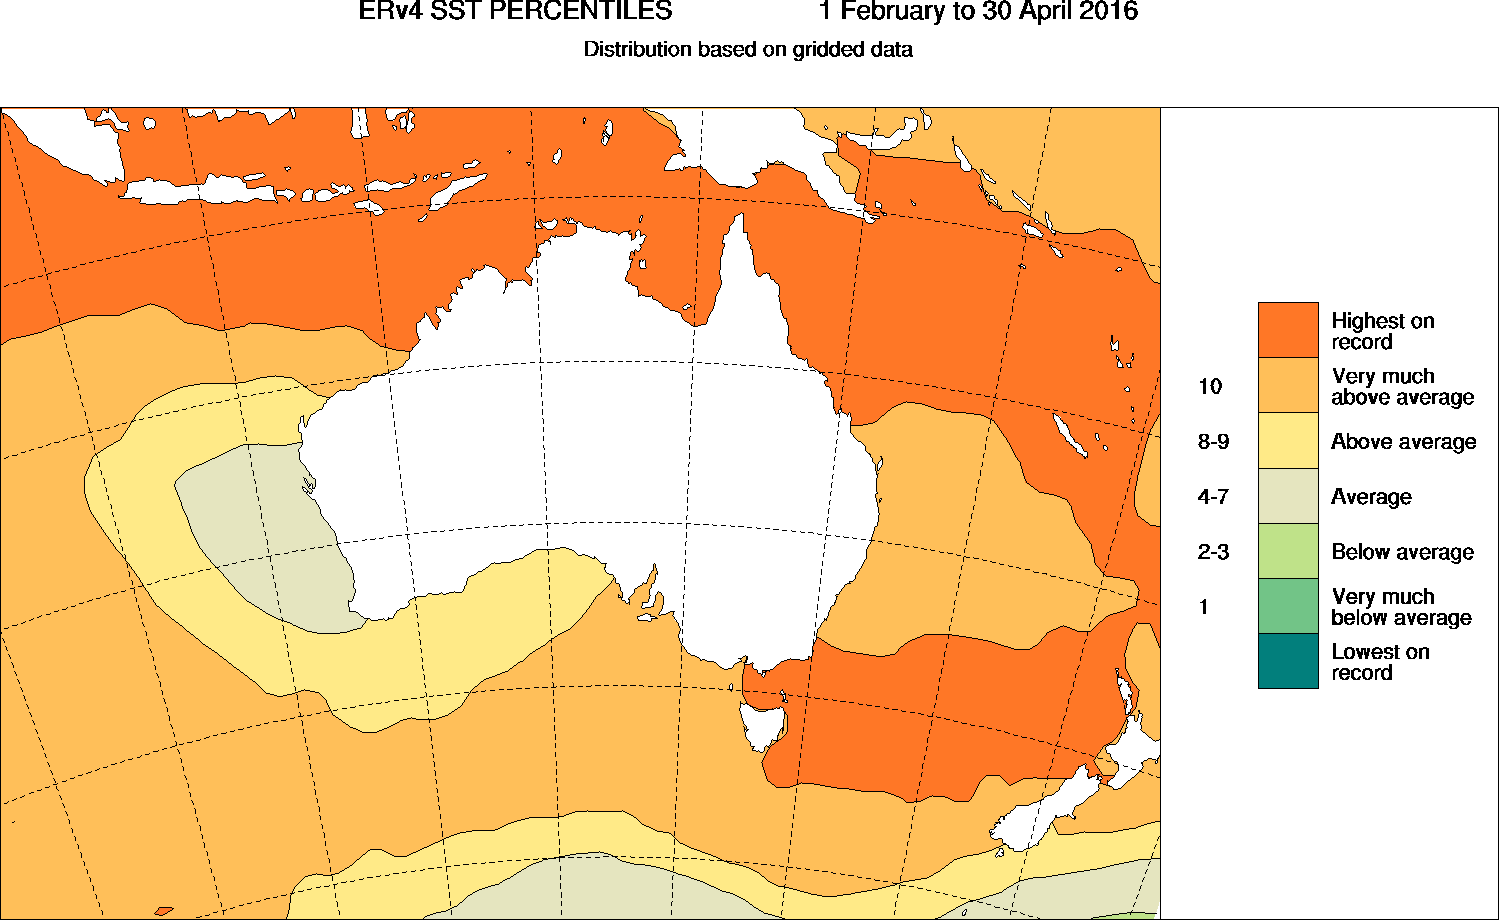 Map showing ocean temperatures around much of Australia were either above average or the highest on record.